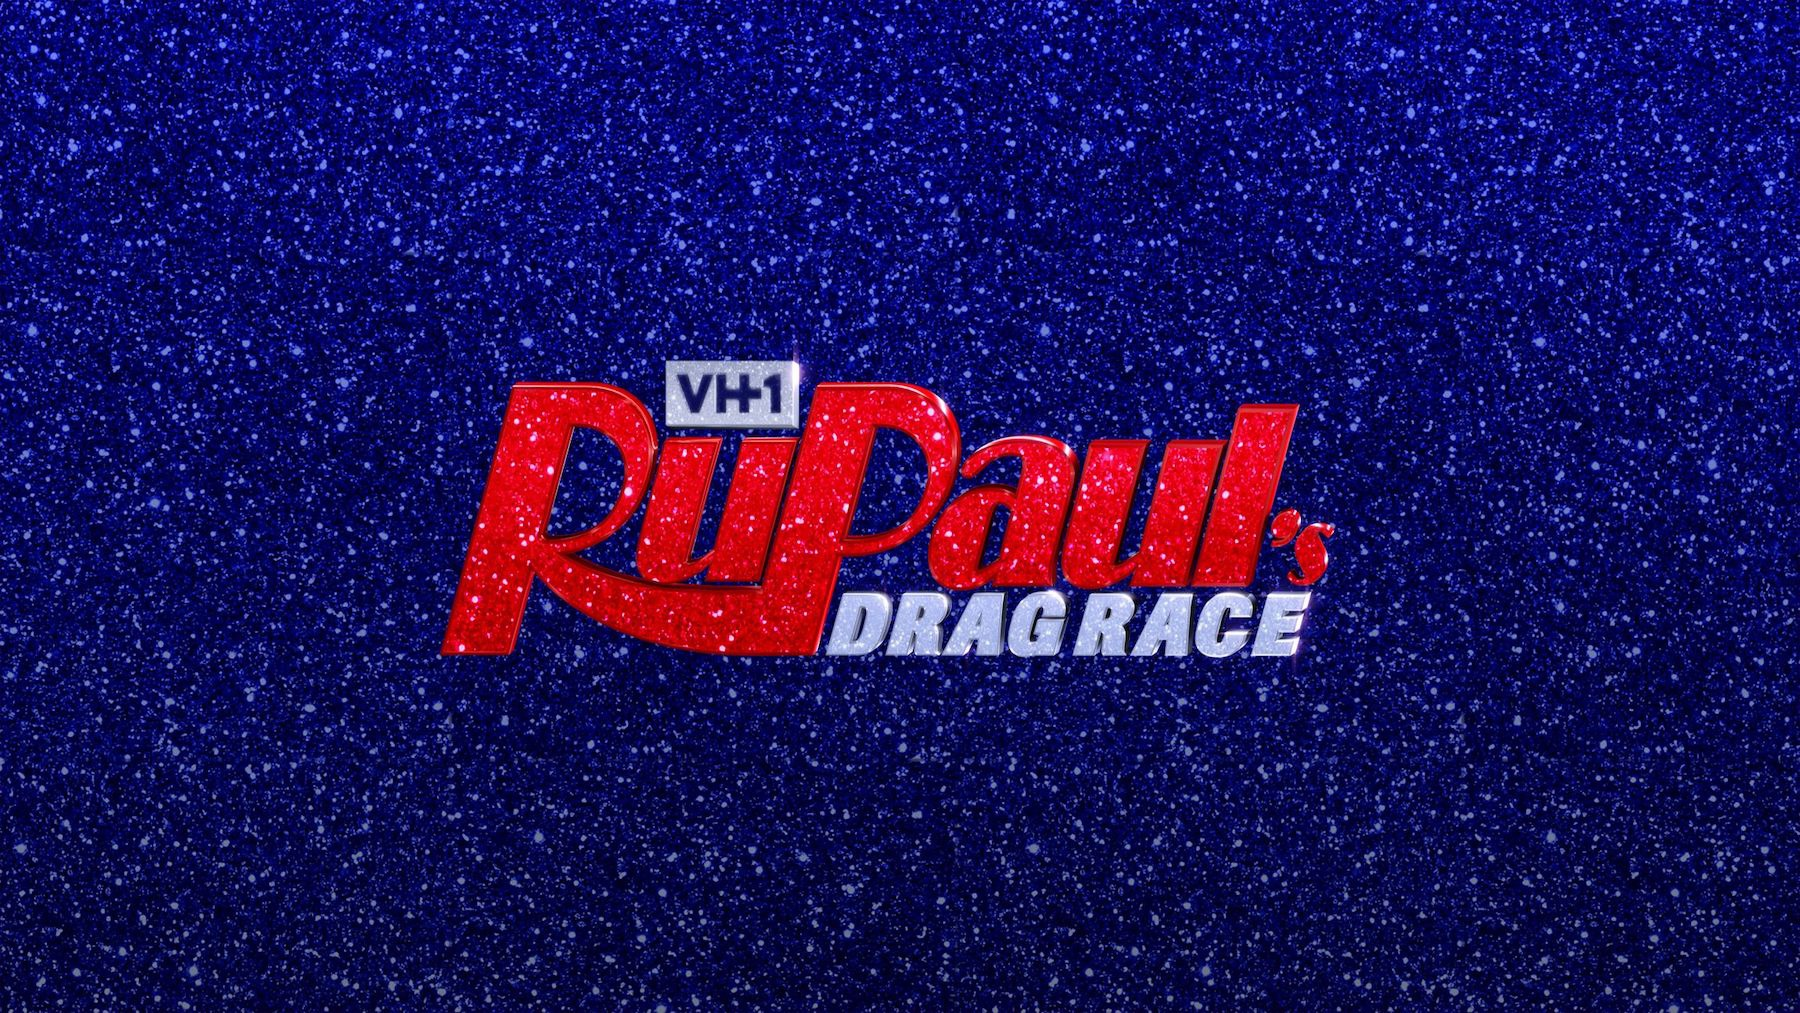 How to Get Cast on 'RuPaul's Drag Race'